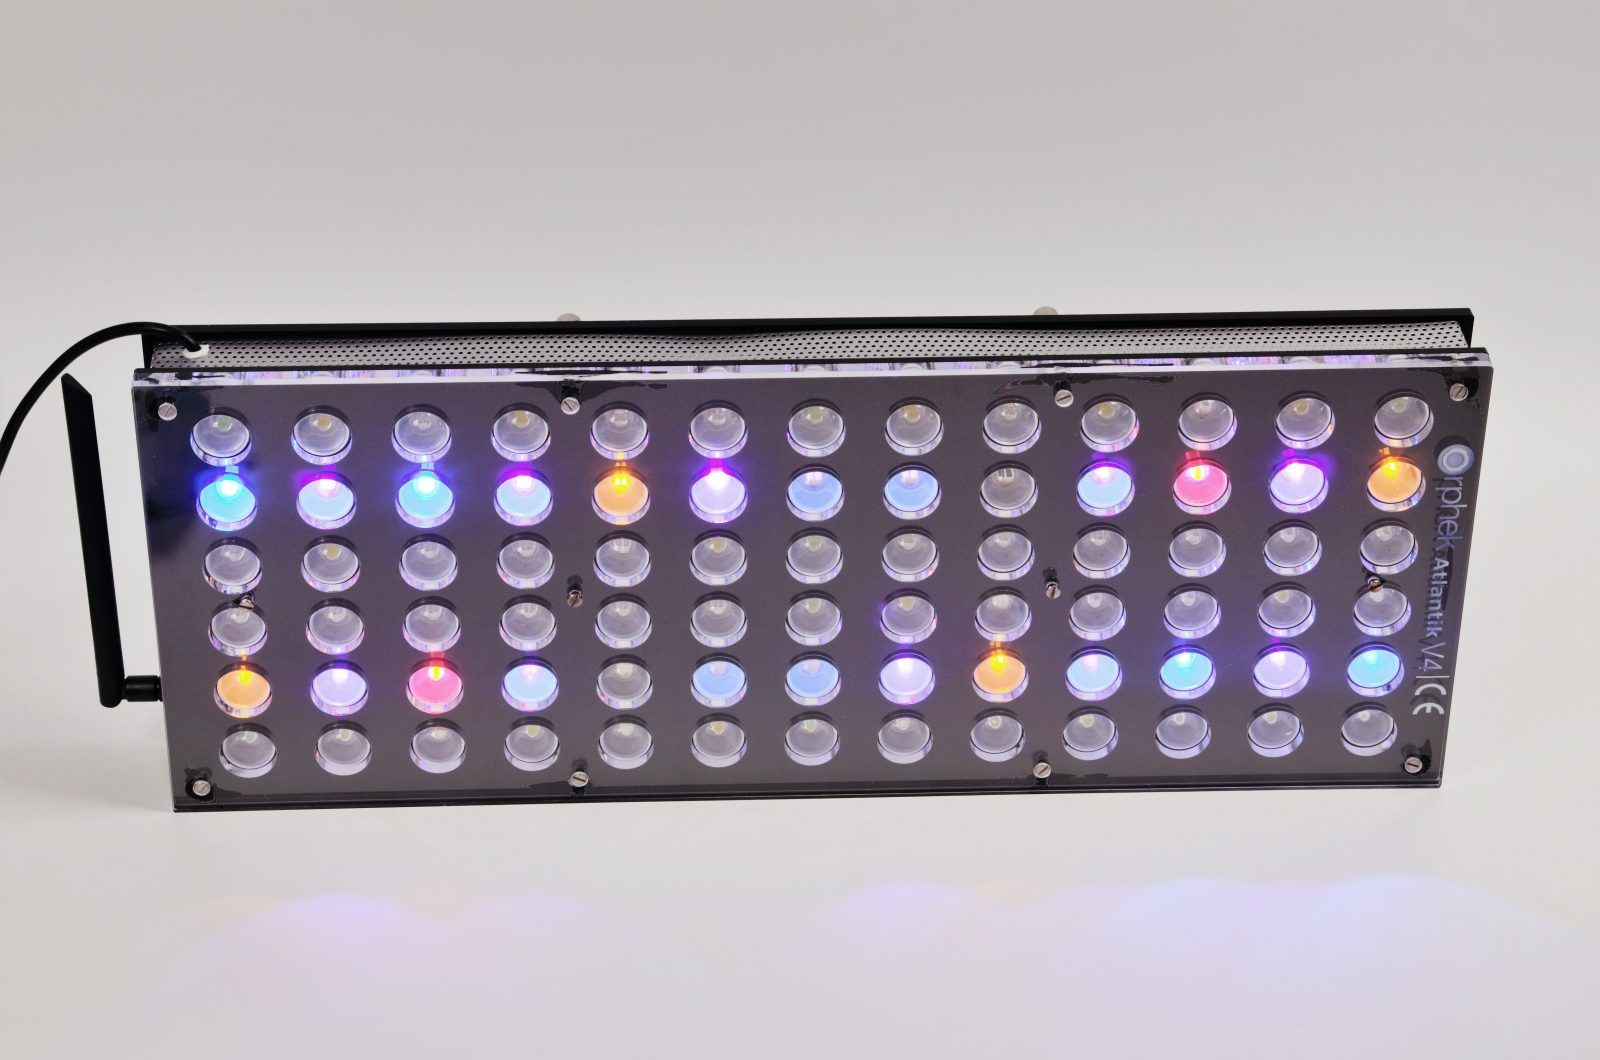 Orphek-Aquarium-LED-Lighting-Reef-Atlantik-V4-אור בערוץ 3 + 4